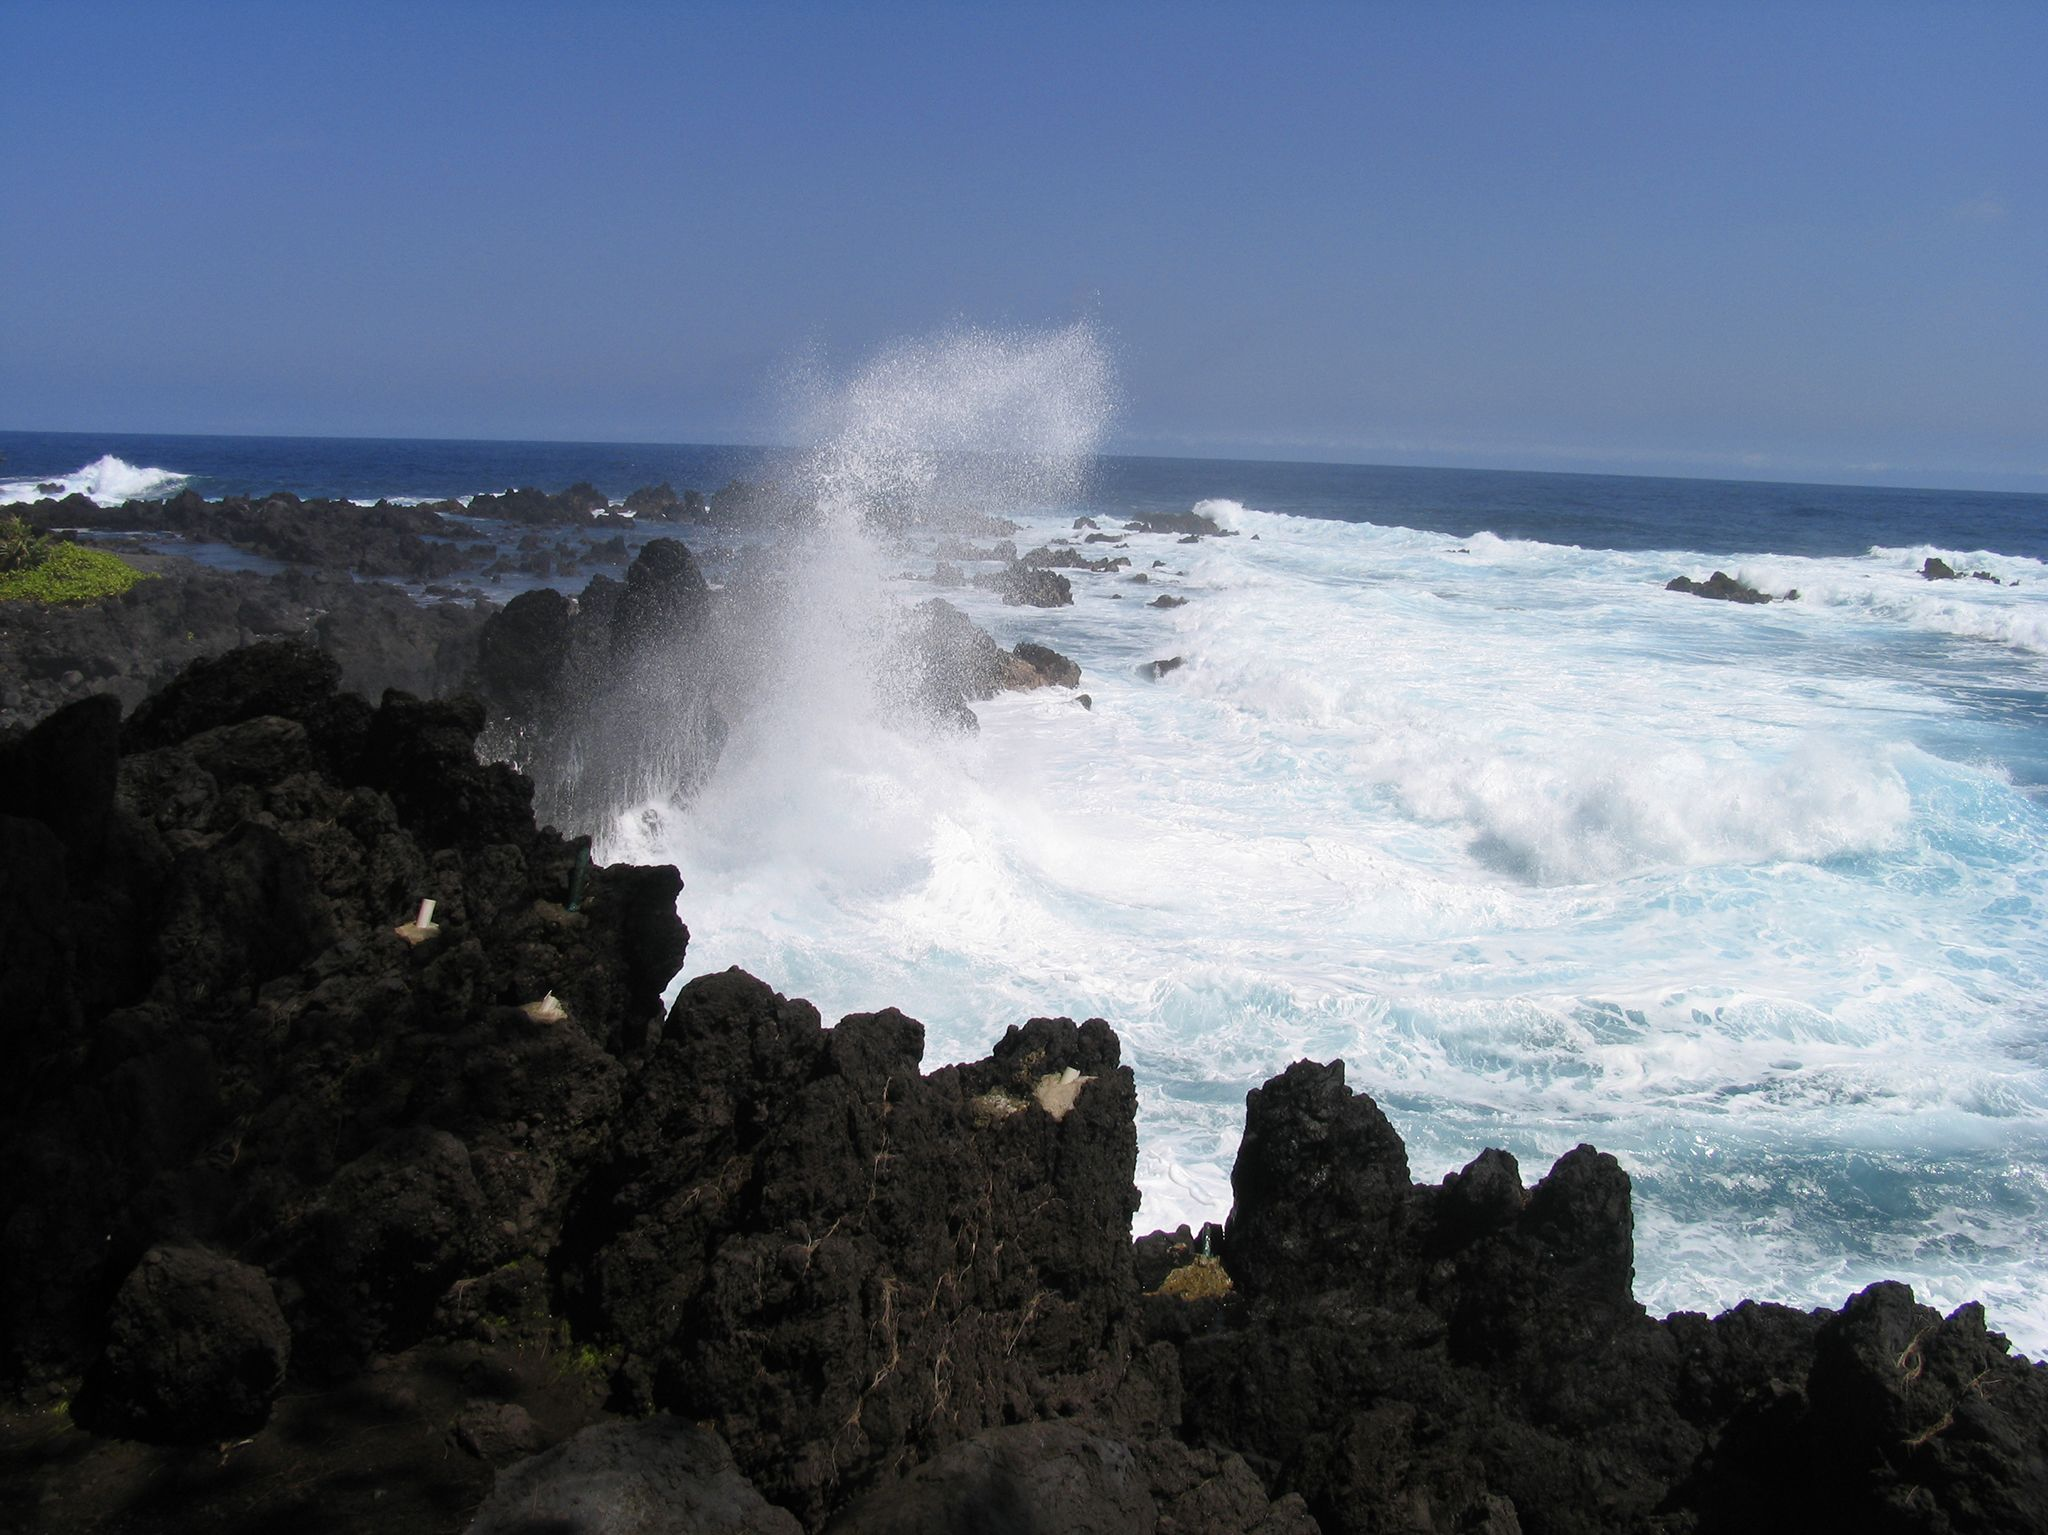 Black lava rock jutting out of the ocean at picturesque Laupahoehoe Park. This image is from... [Photo of the day - April 2019]